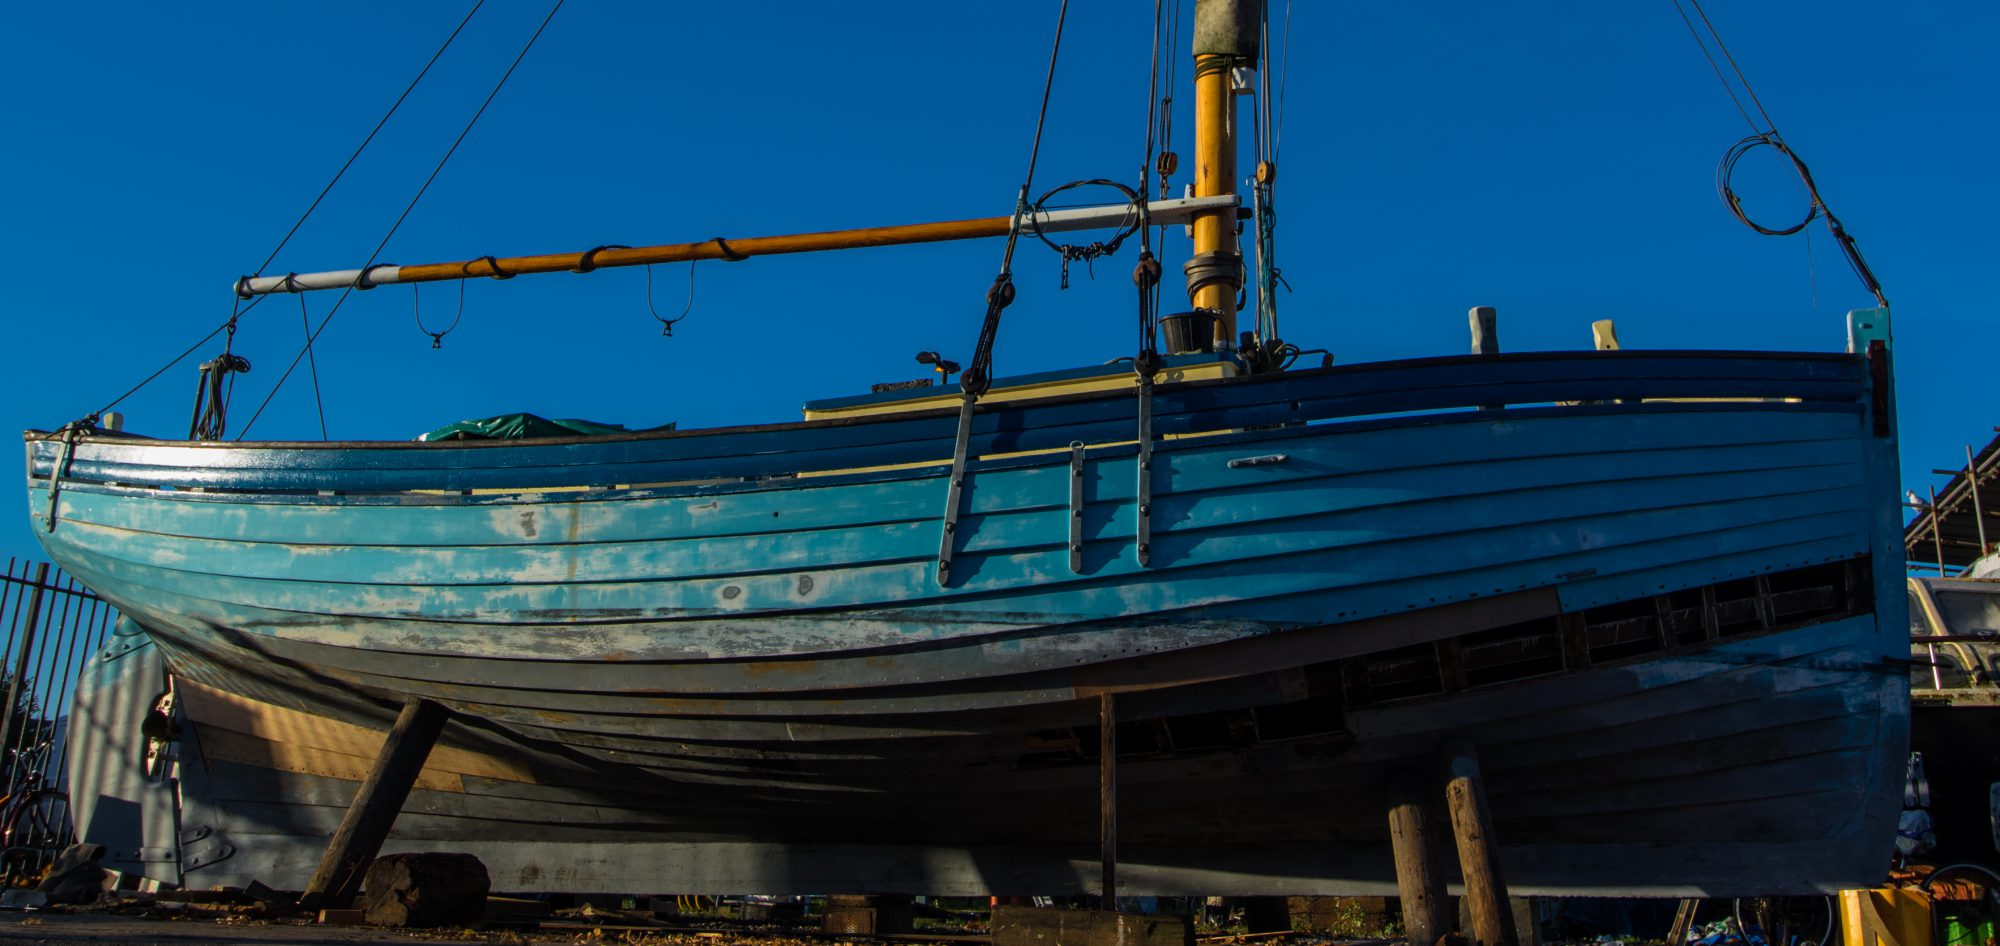 Rolt's Boat Yard